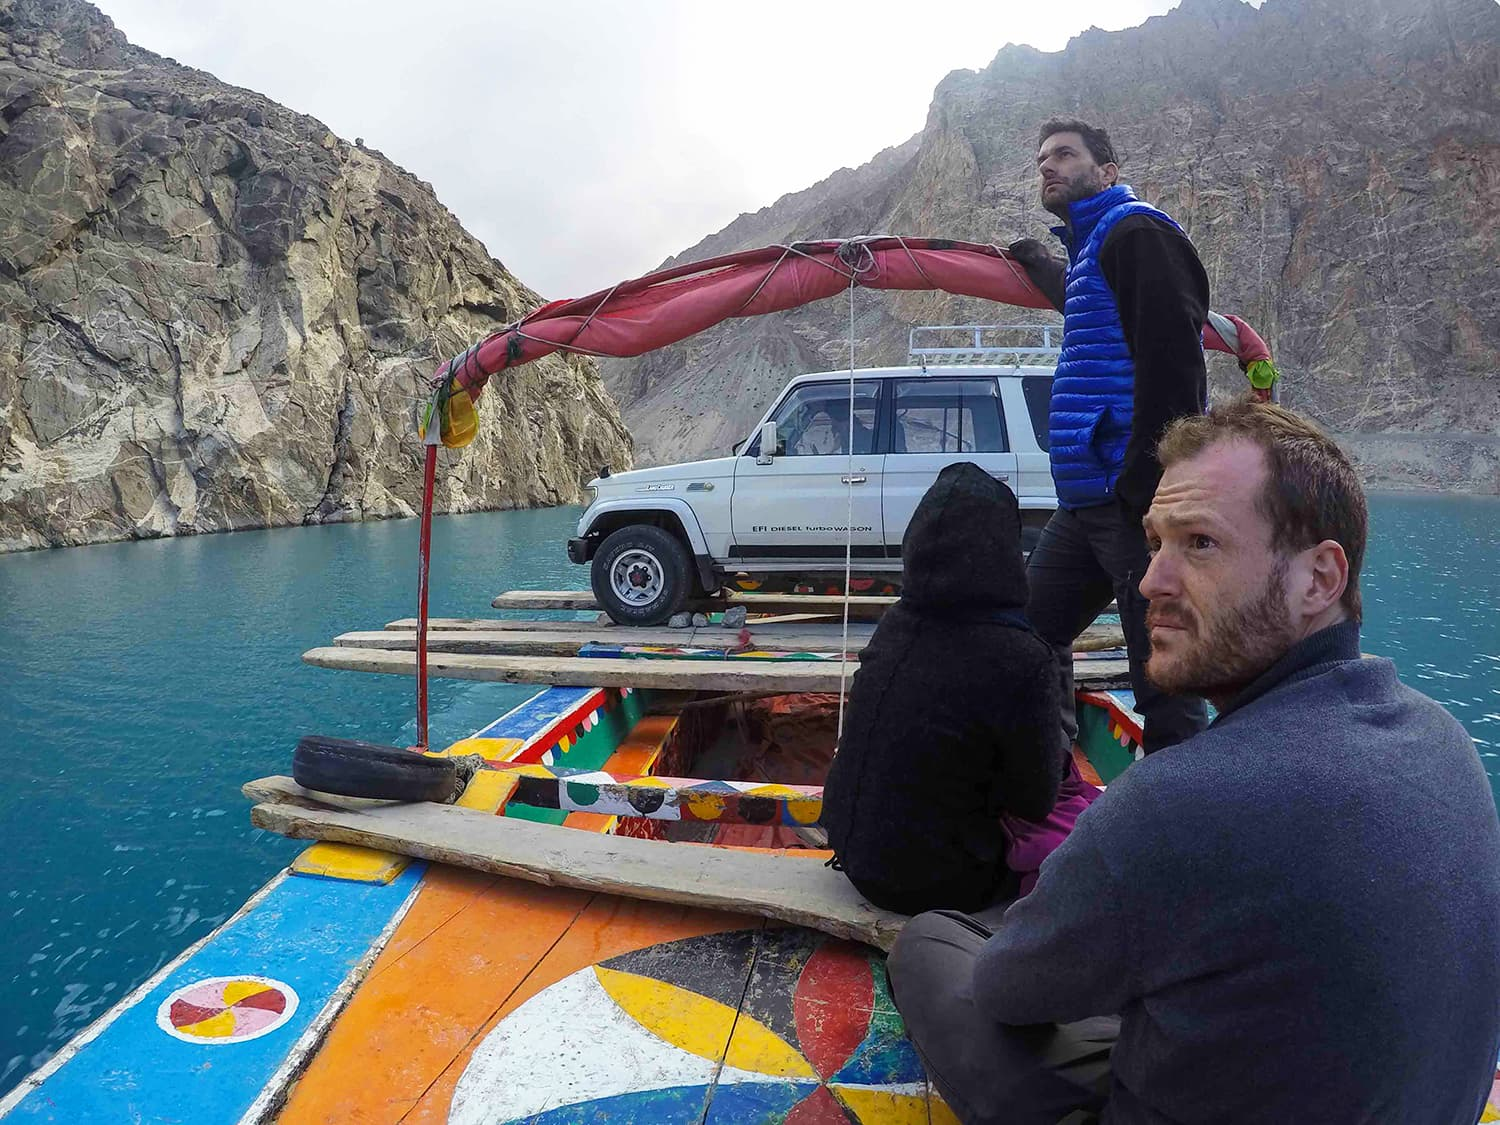 Scanning the mountains for ibexes while on the way back to Hunza on Attabad Lake. —Madeeha Syed